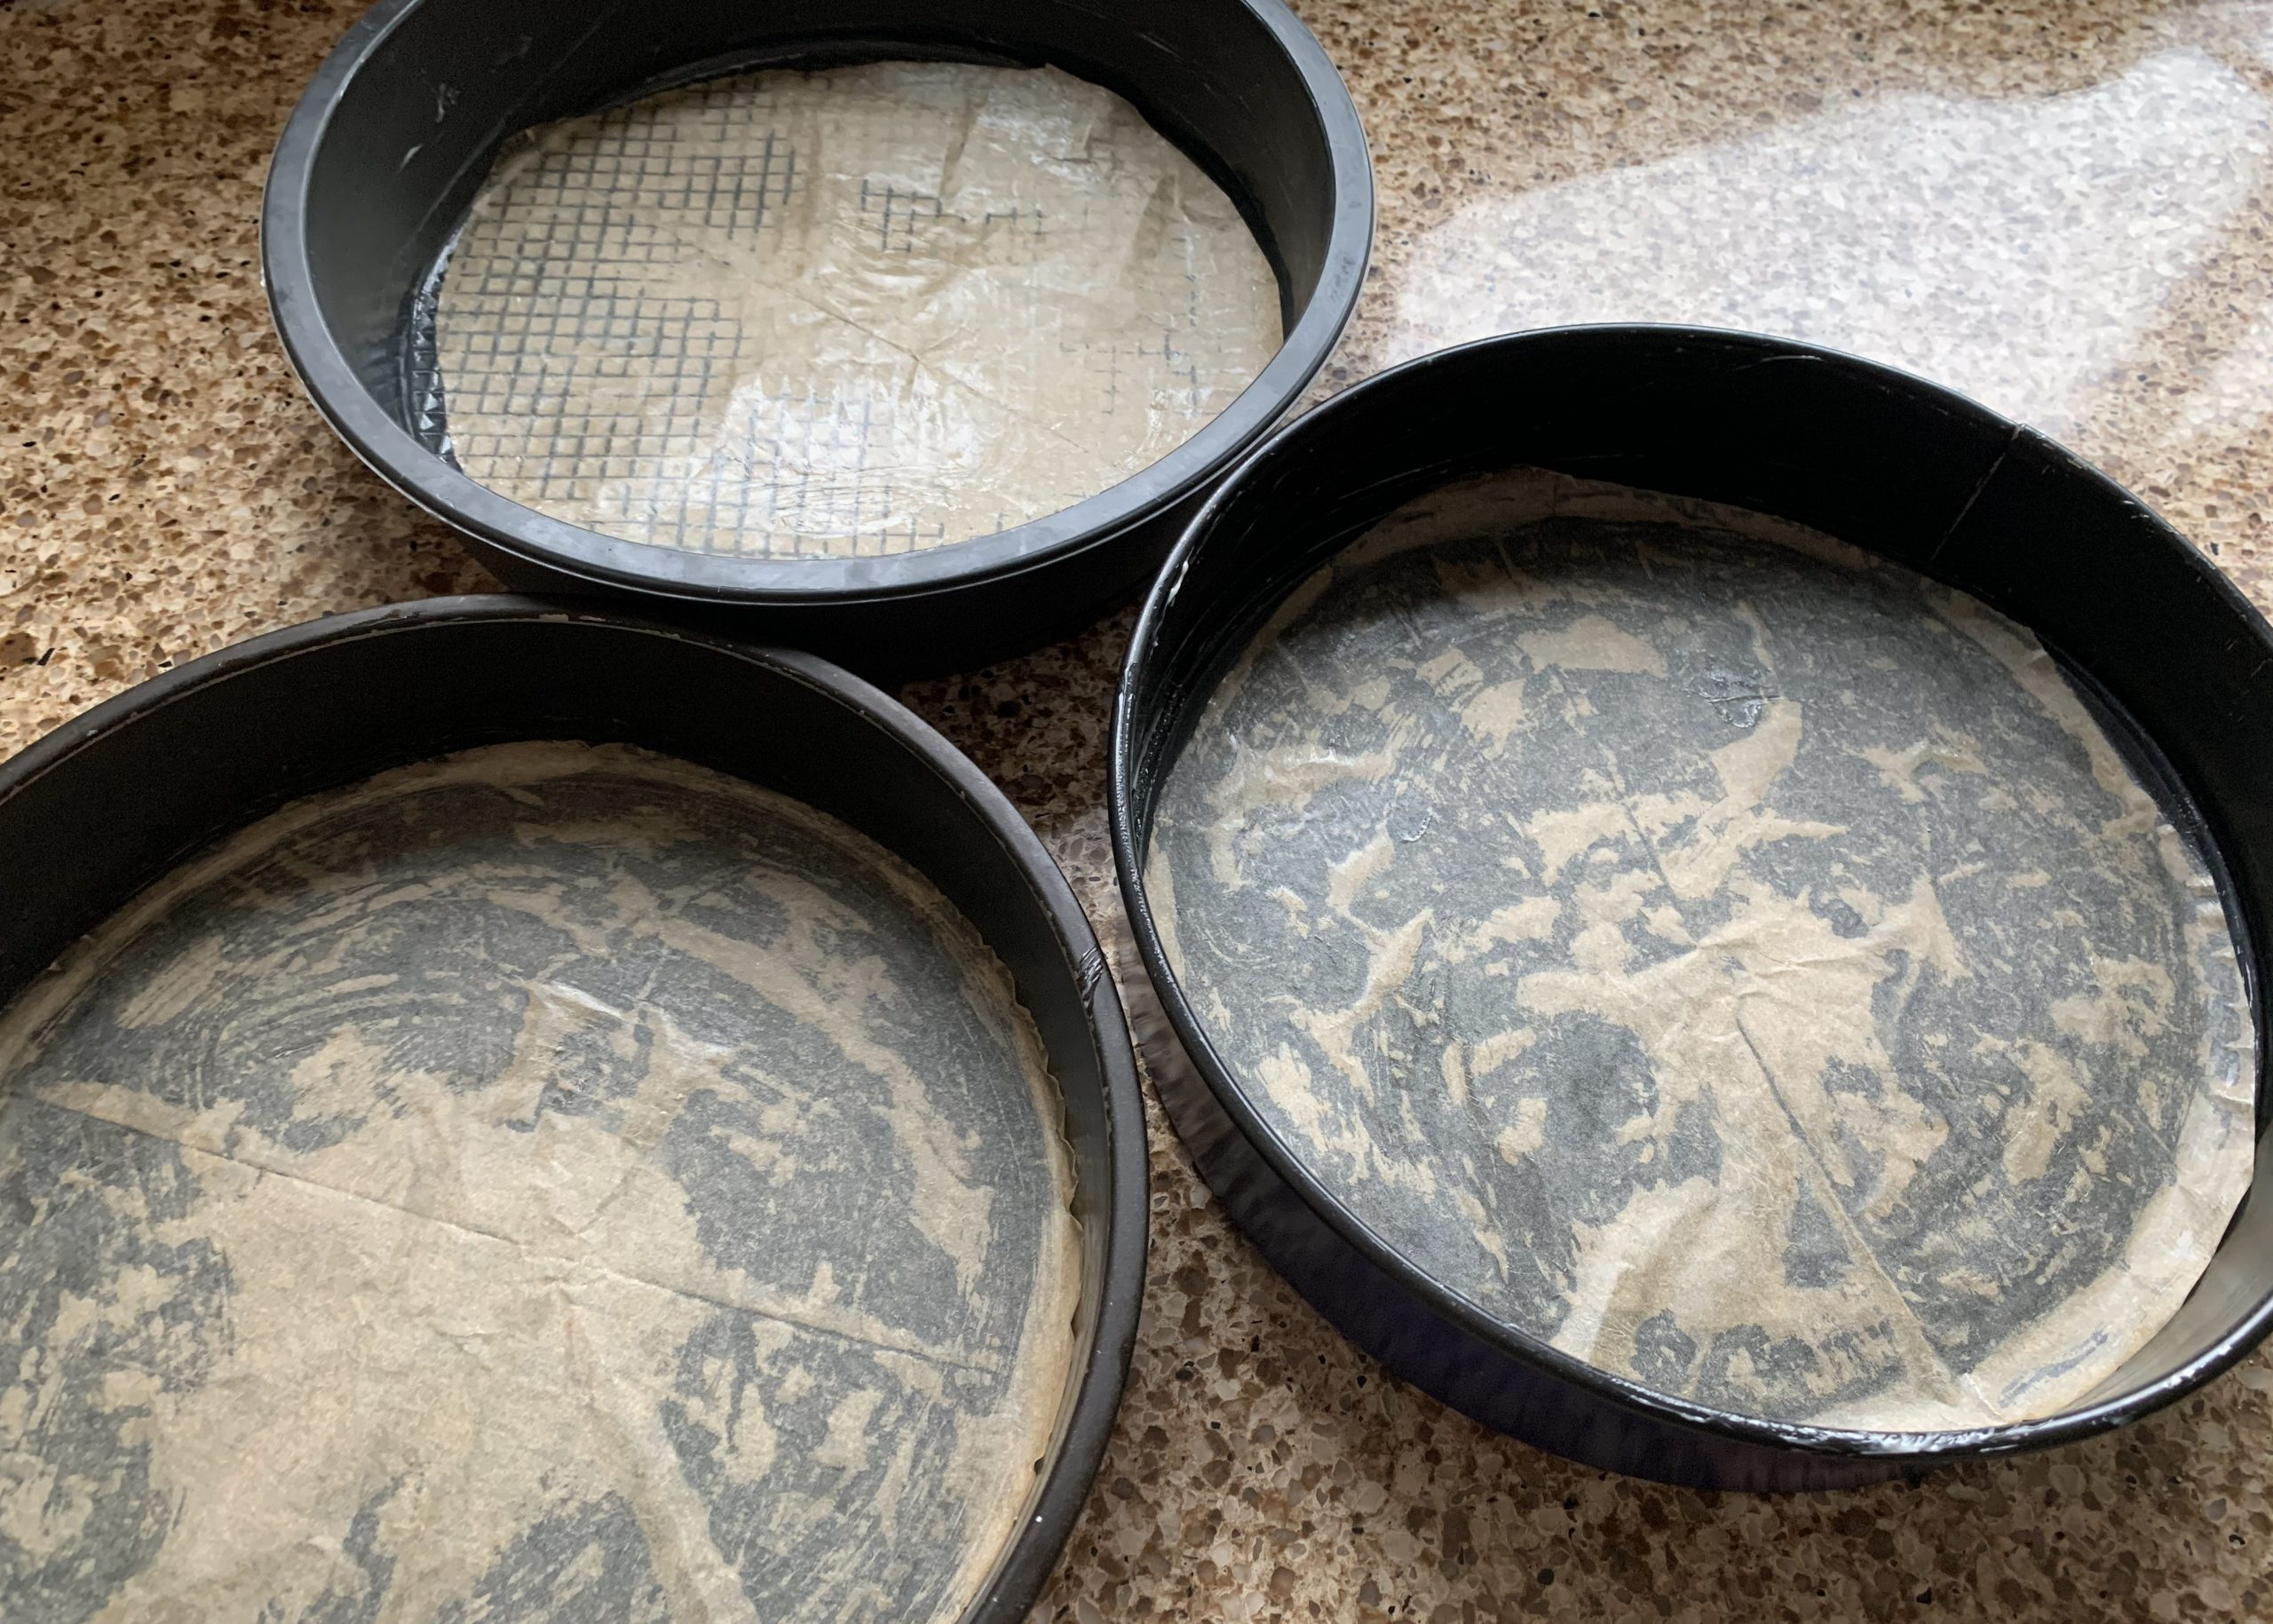 Lined and buttered tins for gluten free Black Forest gateau